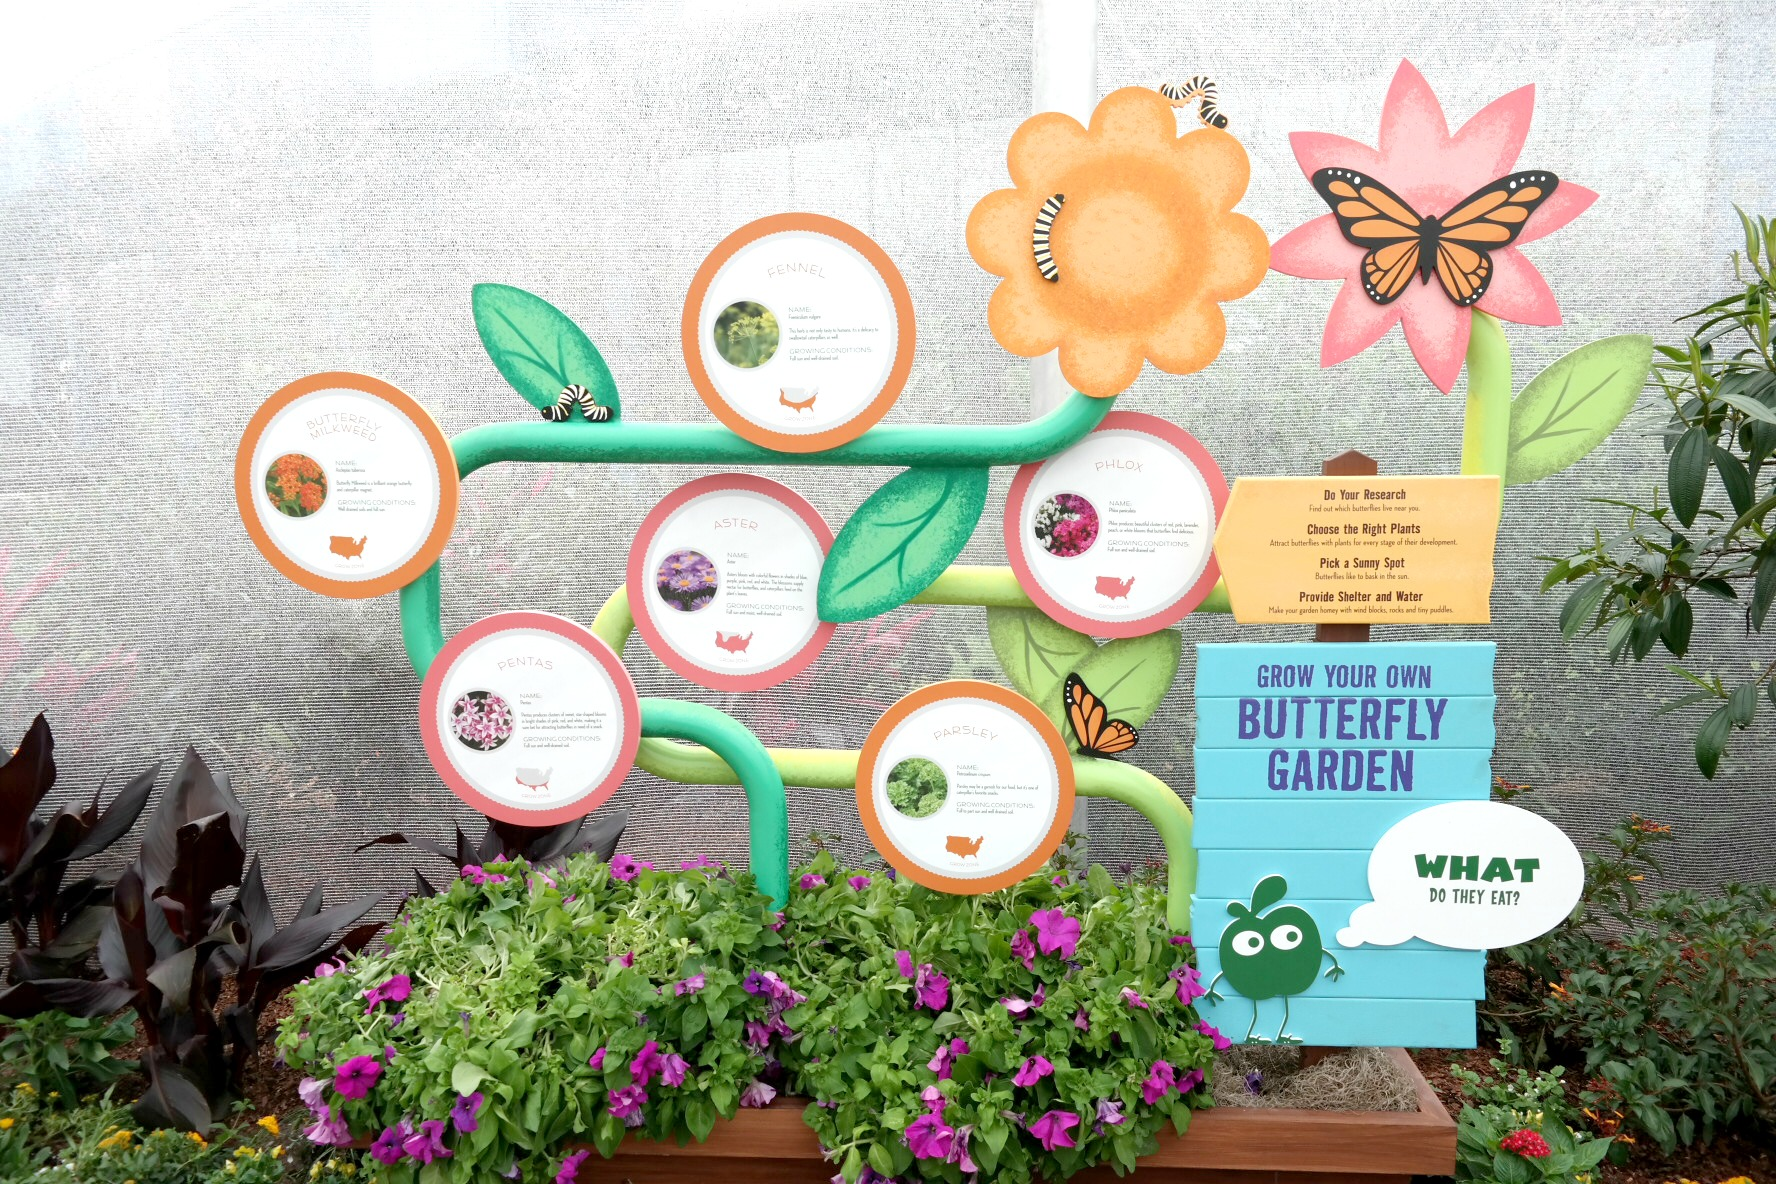 Butterfly_Garden_Instructions_Rev.jpg